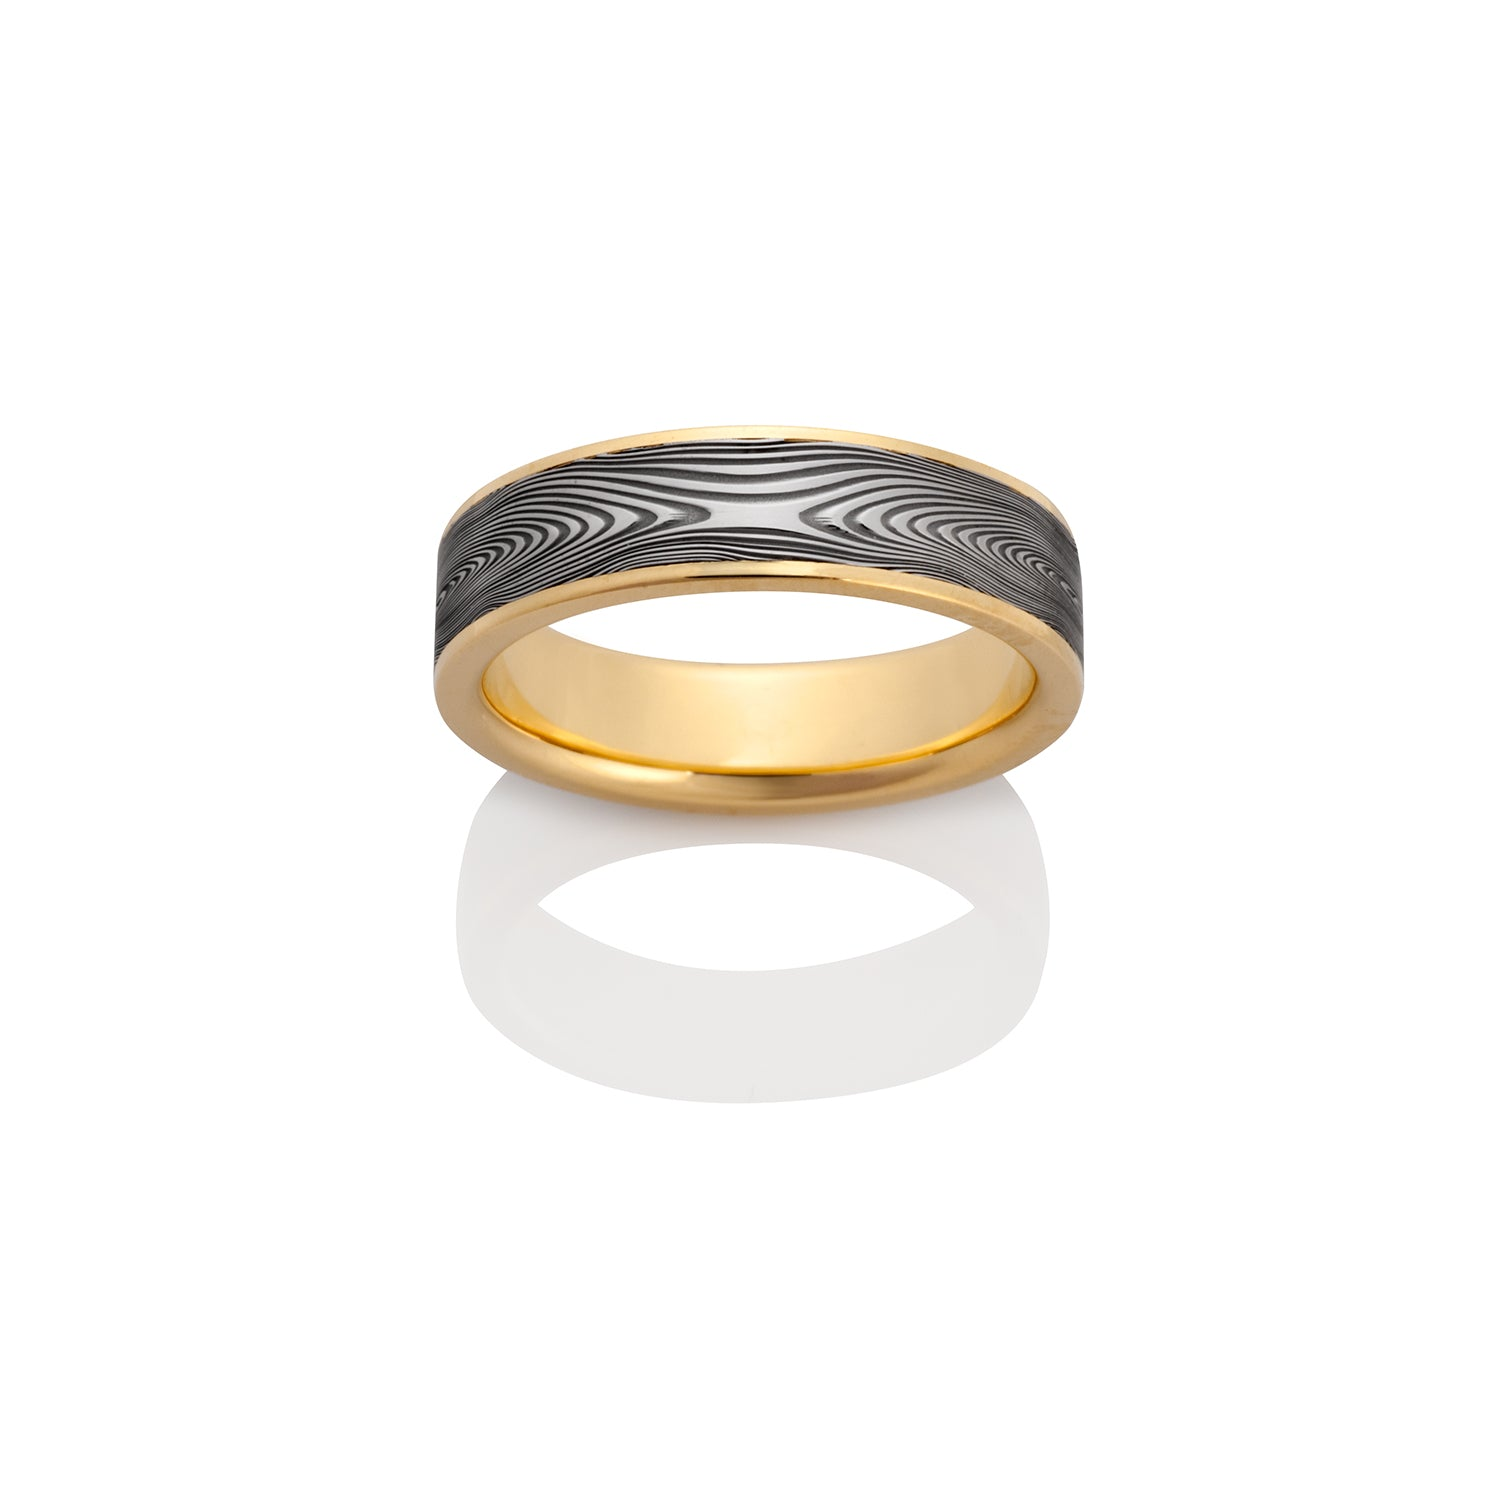 Infinity Damascus Steel and 18k Yellow Gold Ring by Chris Ploof - Talisman Collection Fine Jewelers